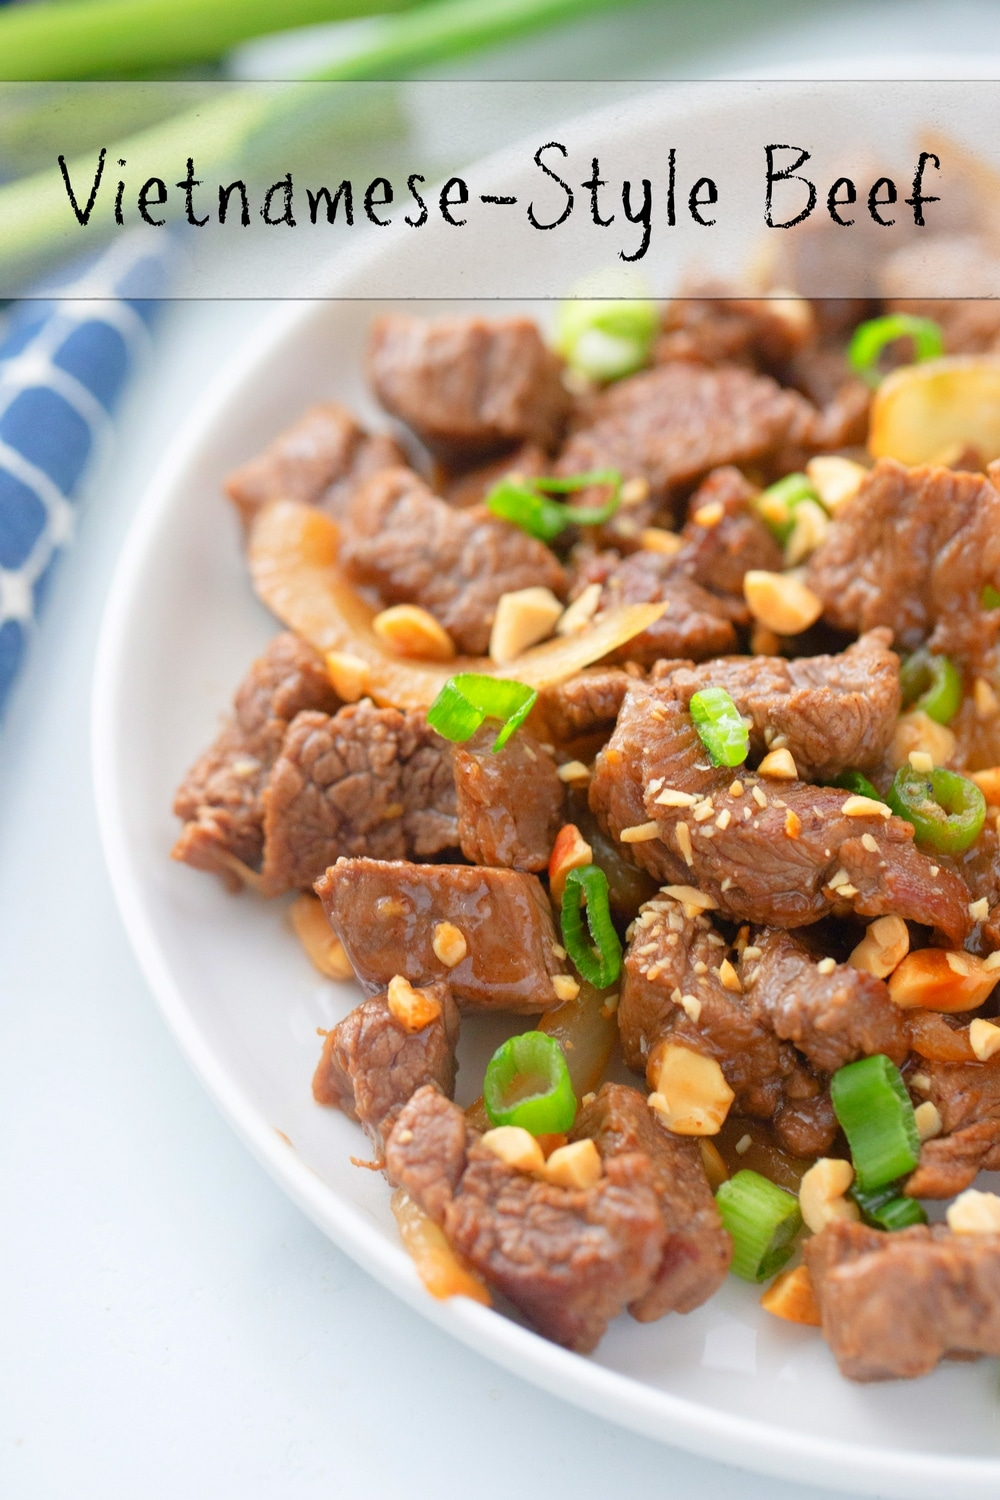 Vietnamese-Style Beef - an easy and absolutely delicious weeknight meal you need to feed your family! All the flavors, both sweet and savory, of garlic, pepper and lime come shining through. via @cmpollak1